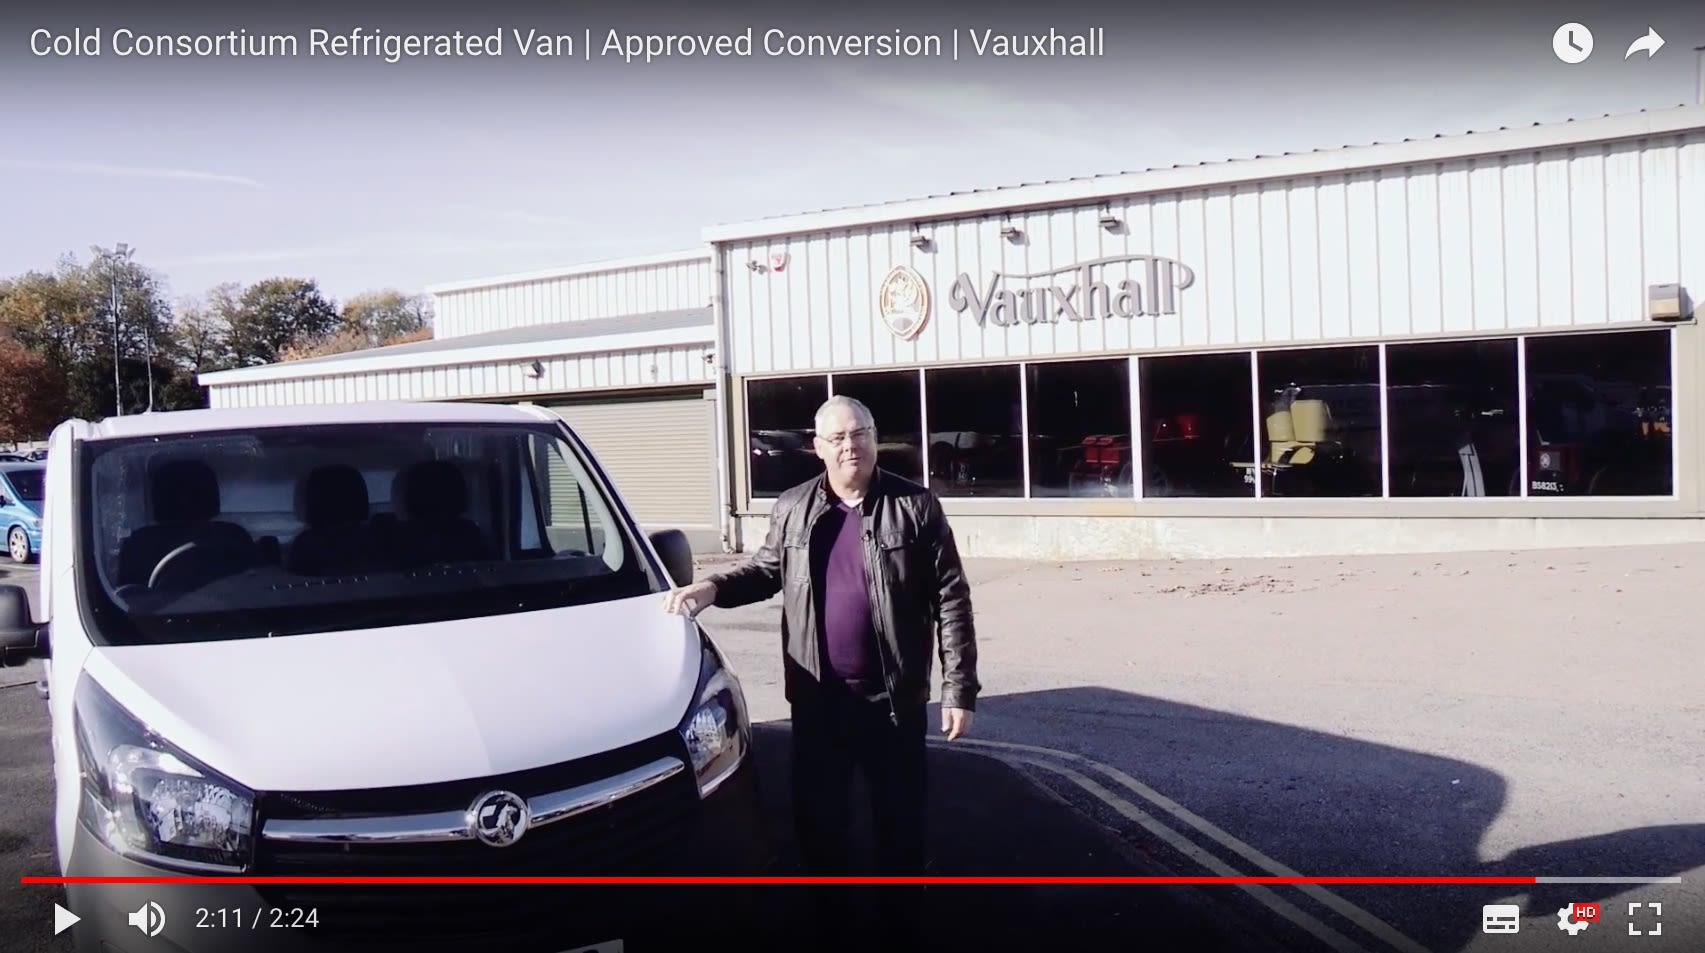 Watch the Official Vauxhall Video for Our Refrigerated Van Conversions